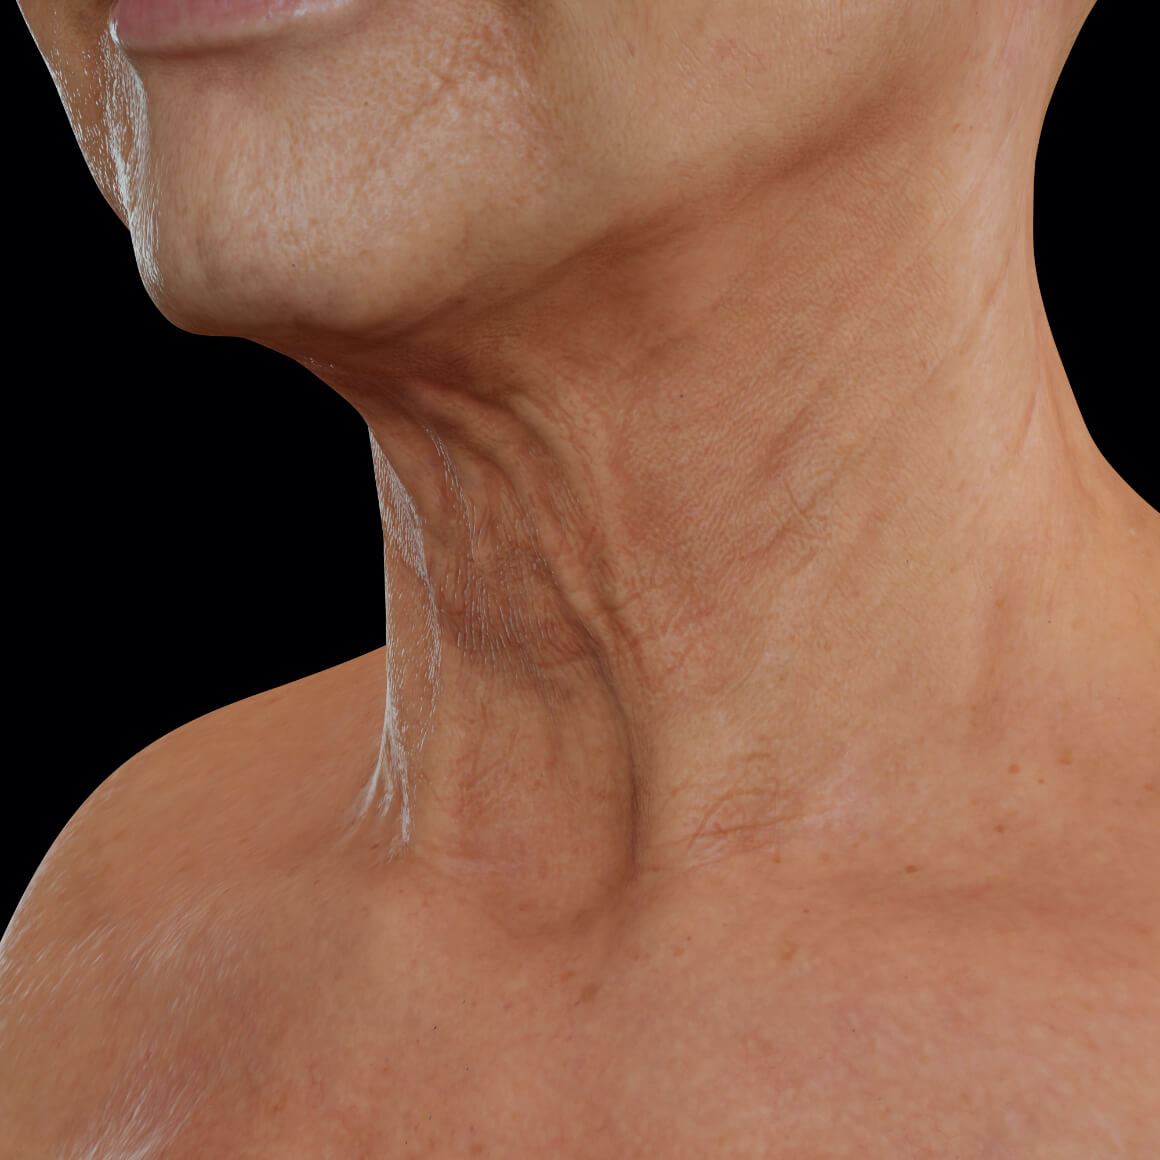 Female patient from Clinique Chloé positioned at an angle showing laxity in the skin of the neck